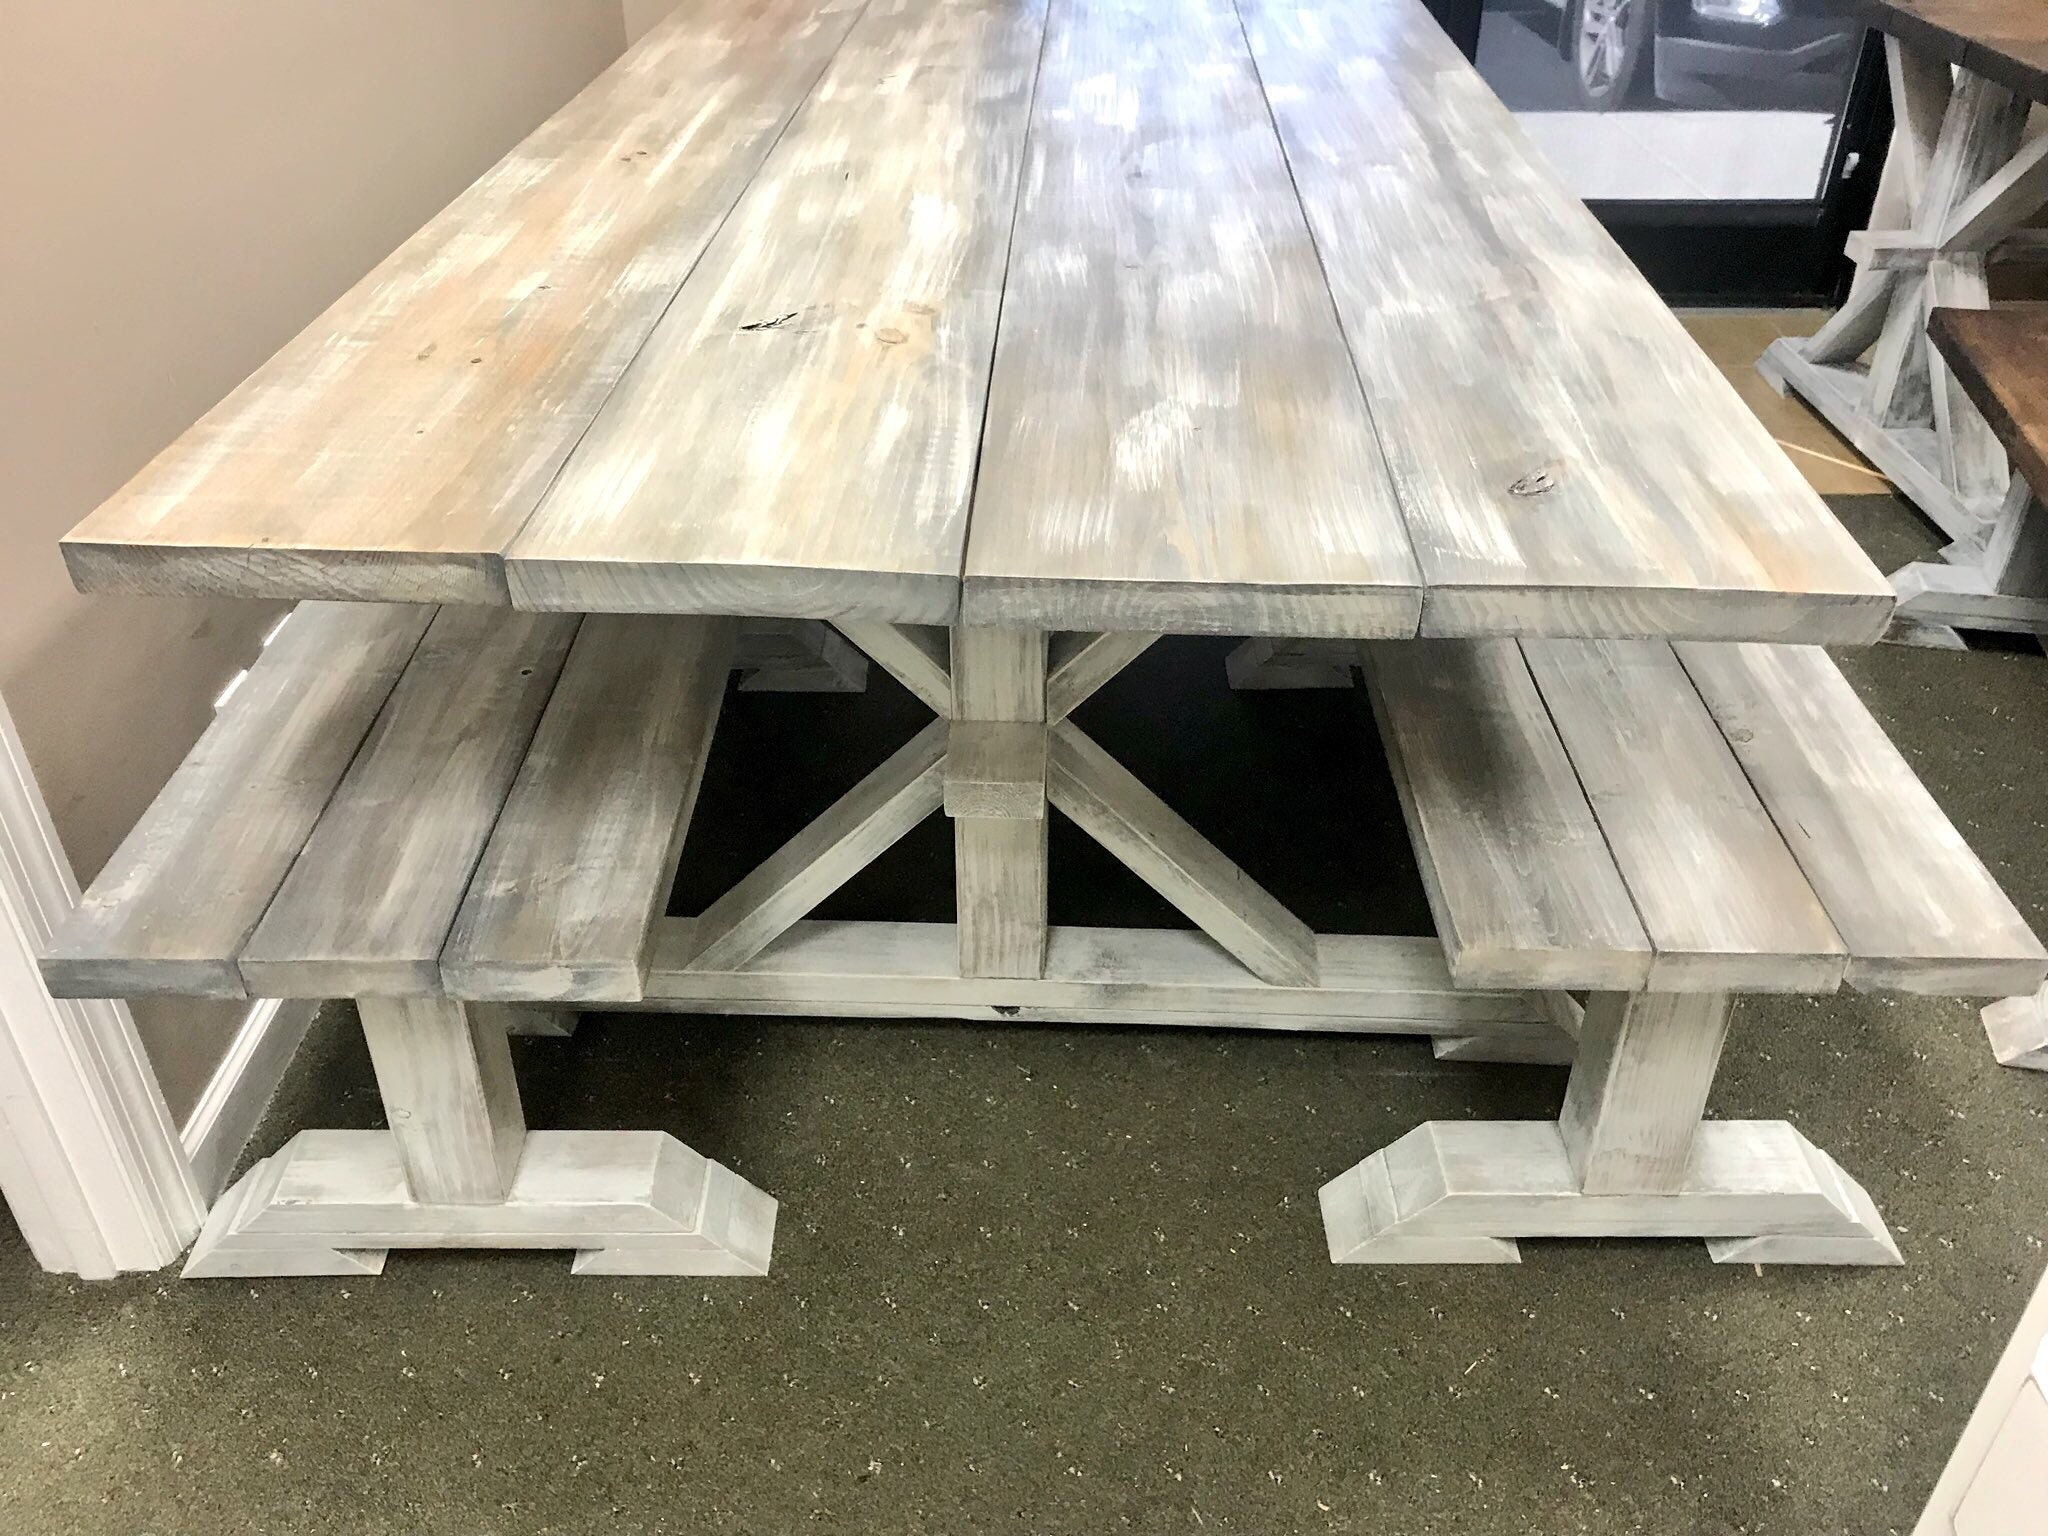 Rustic Long Pedestal Farmhouse Table With Benches Gray White Wash